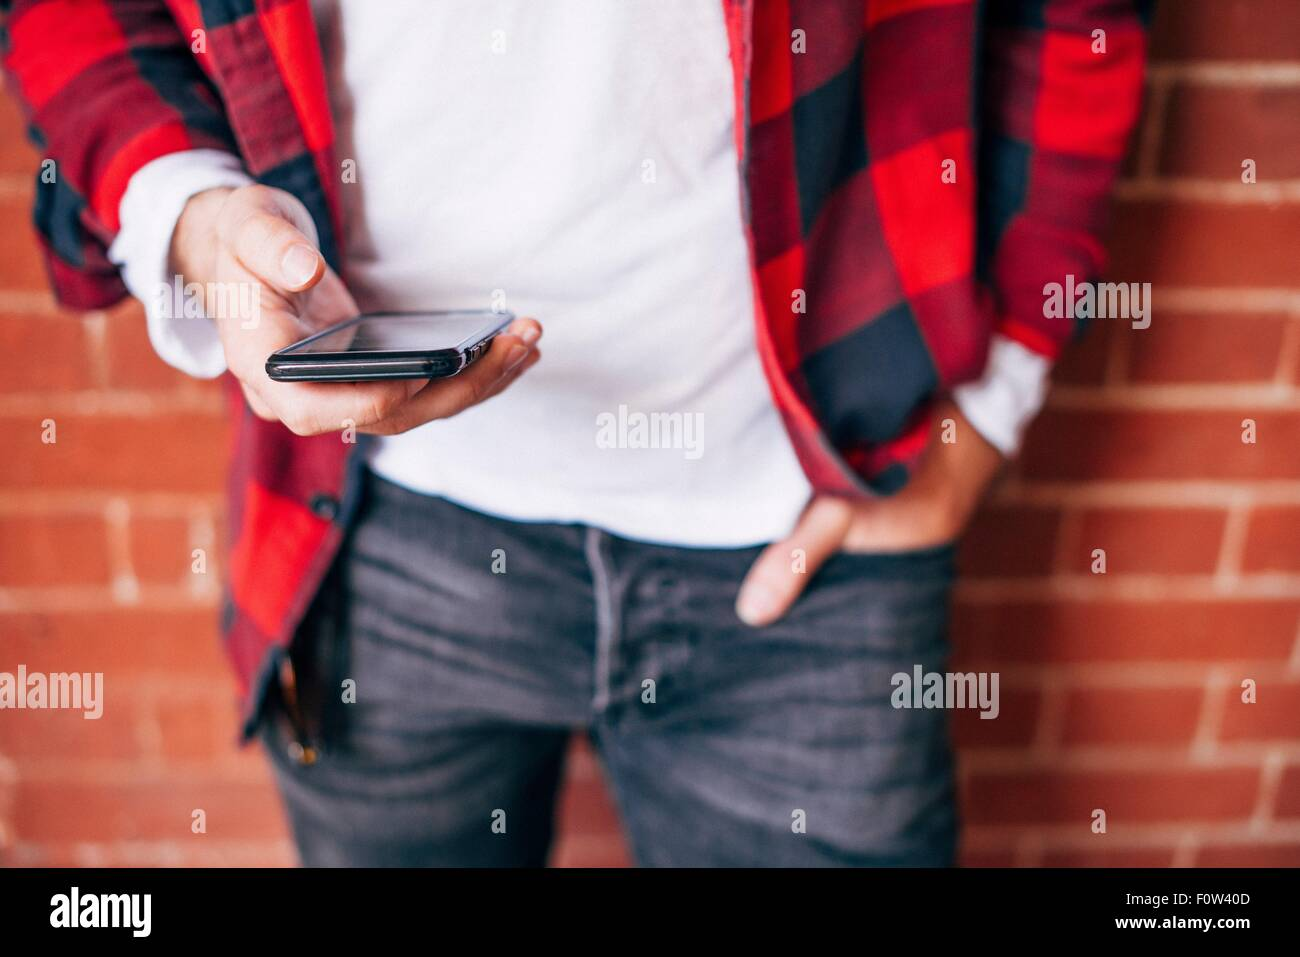 Detail shot of man's hands holding smartphone - Stock Image